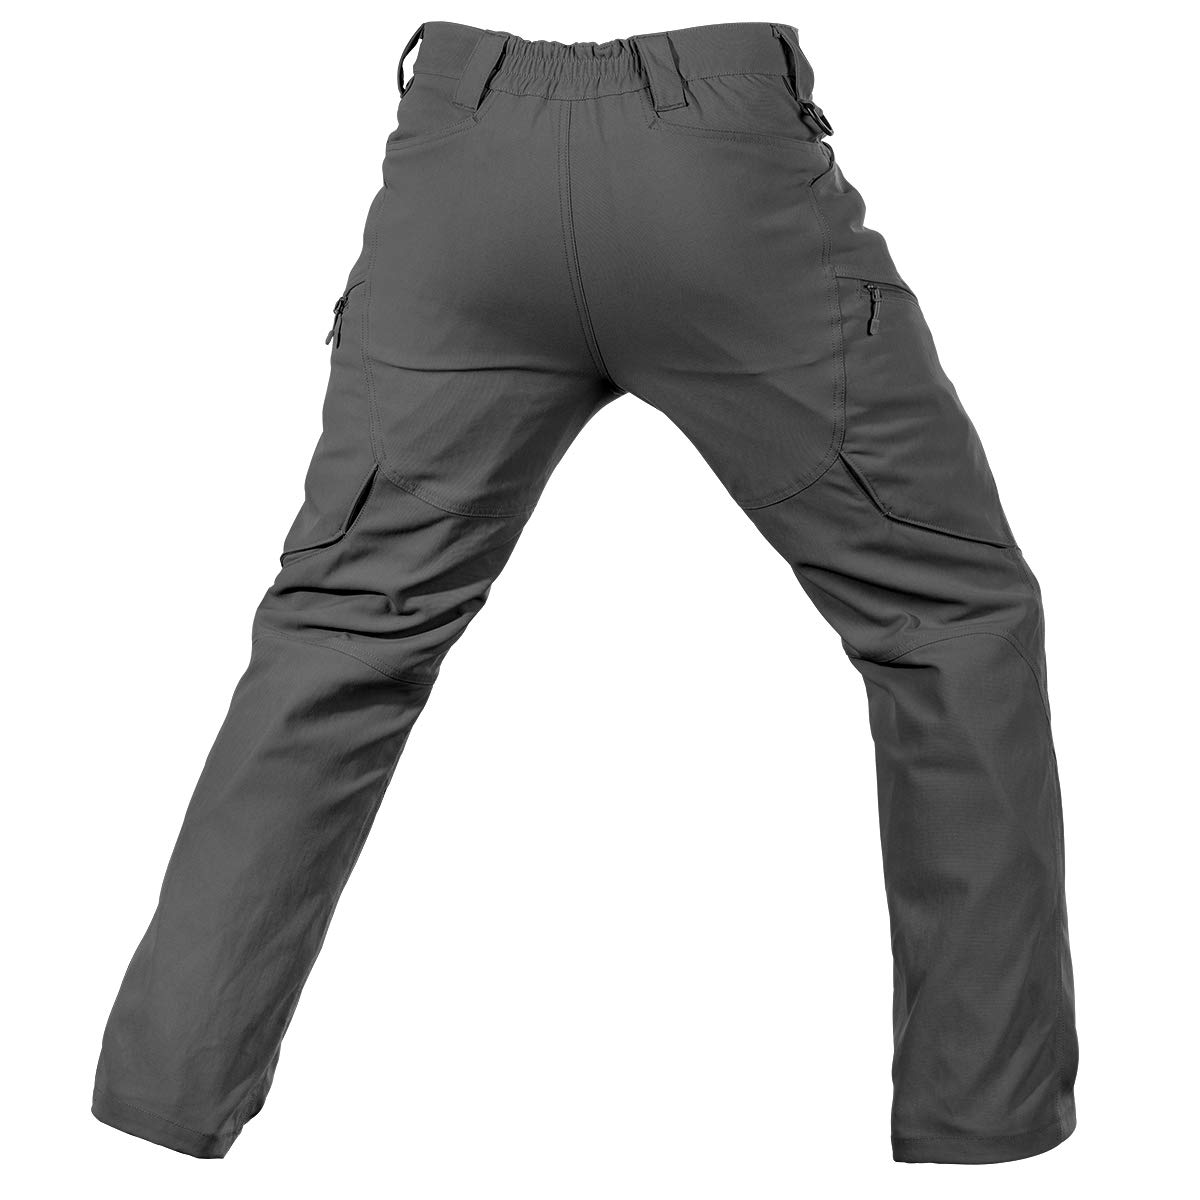 FREE SOLDIER Men's Tactical Pants back